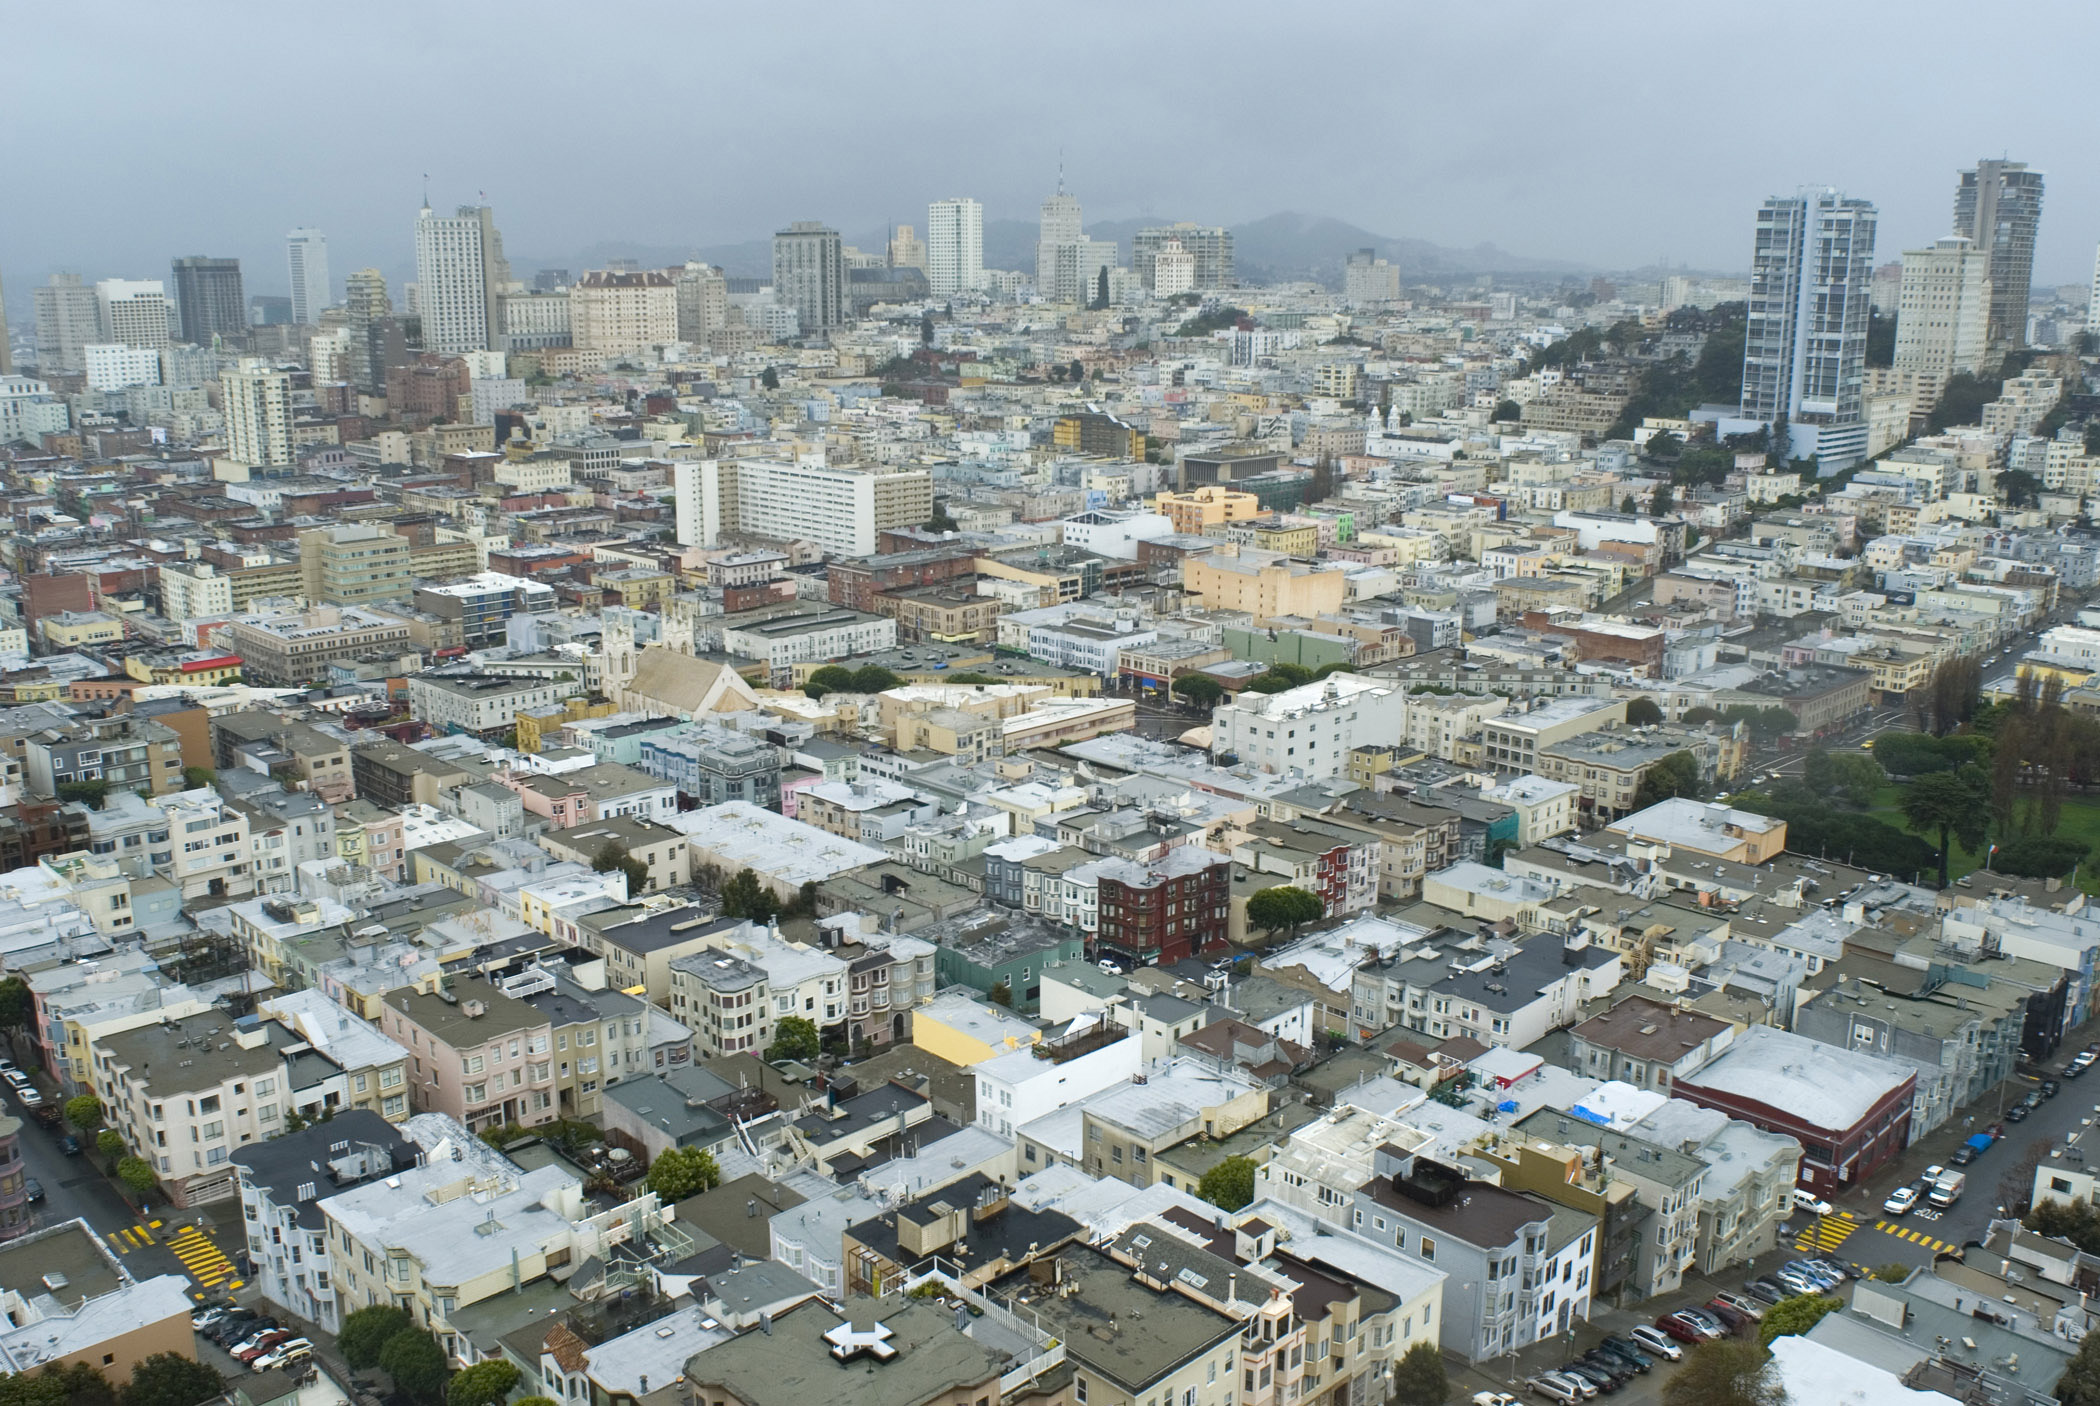 Various Busy City Streets and Buildings in San Francisco. Captured in Aerial Extensive View.